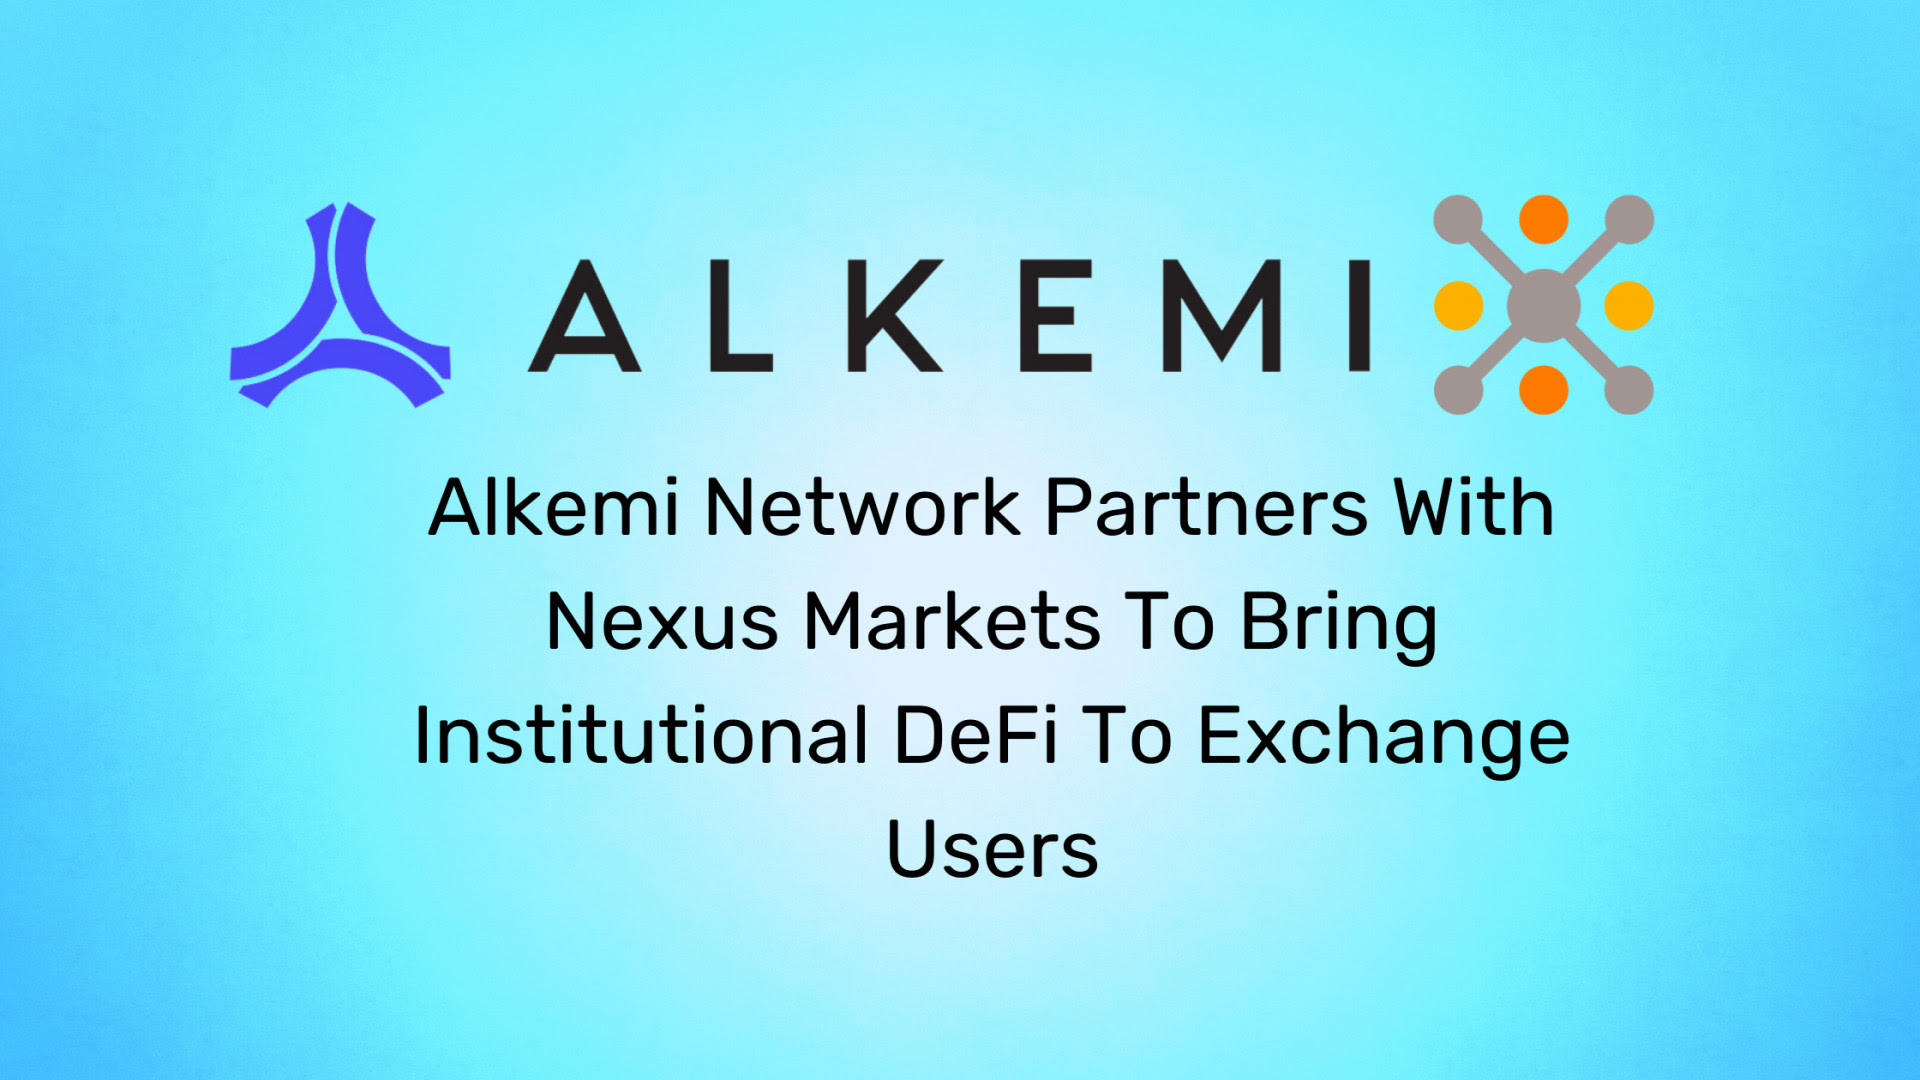 Alkemi Network Partners with Nexus Markets to Bridge the Worlds of CeFi and DeFi